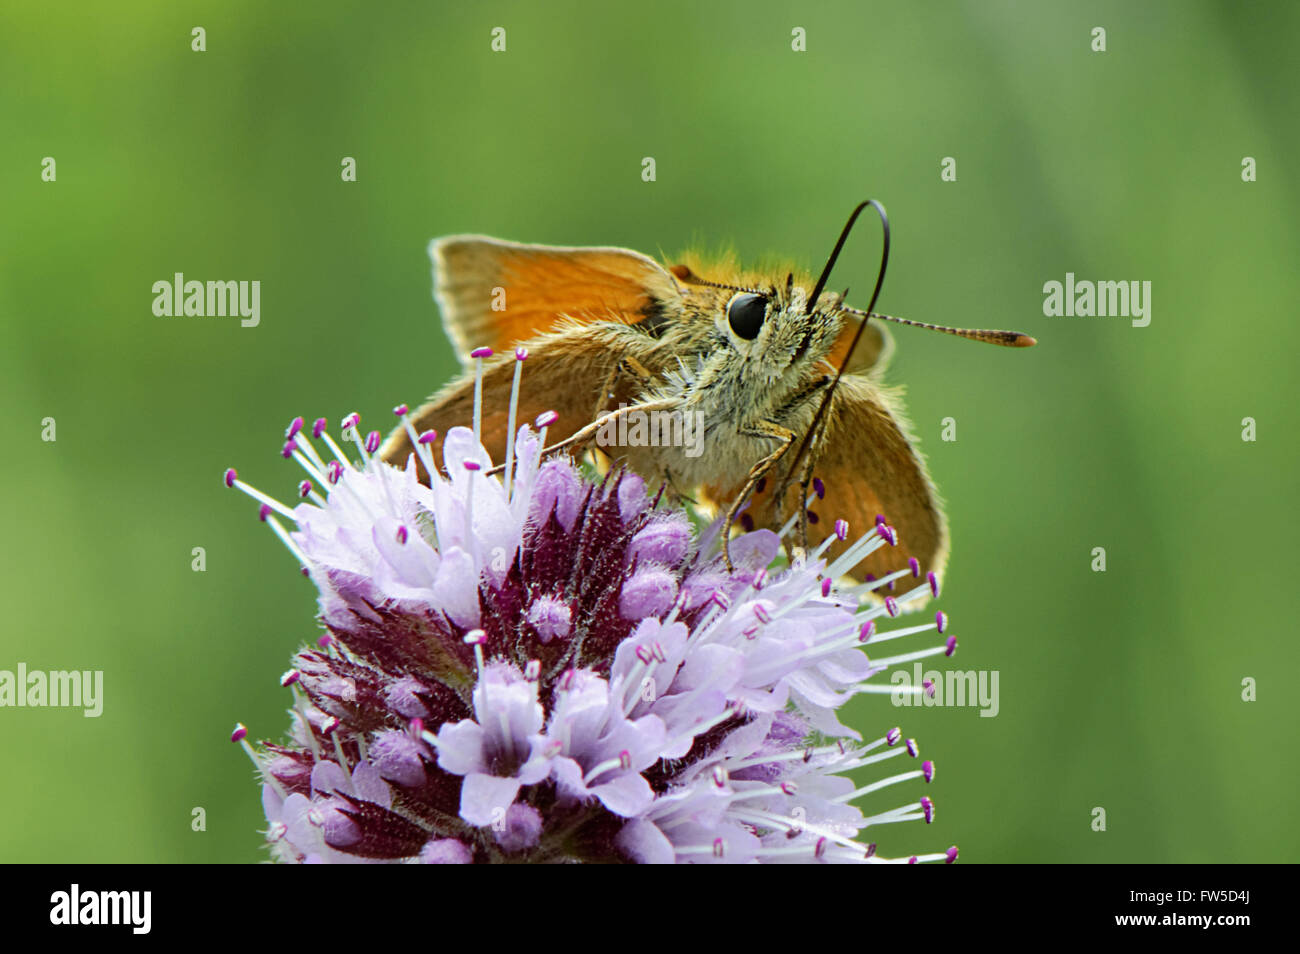 Moth drinking Nectar from flower - Stock Image